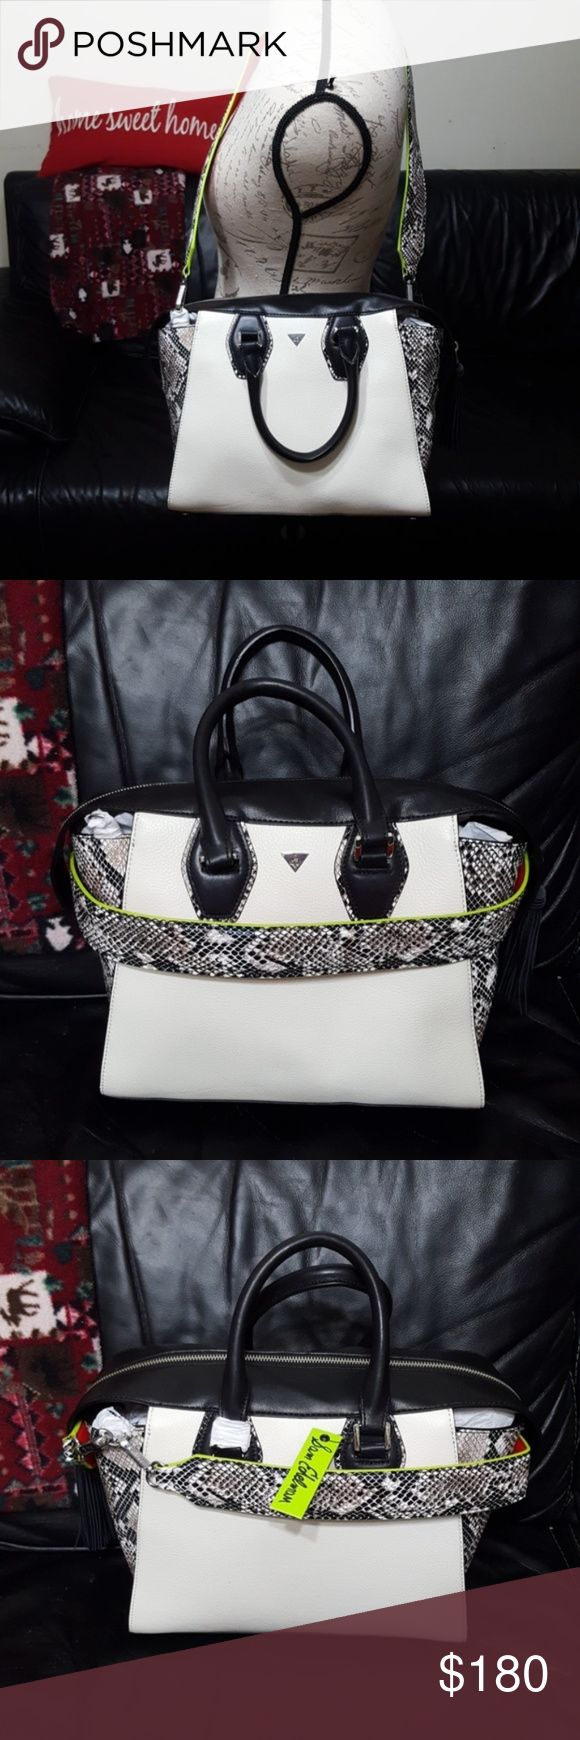 """Sam Edelman Jodie Trapeze tote in Winter White NWT, still has the tissue paper stuffing inside . Absolutely gorgeous Sam Edelman purse in Winter White with faux snake print with red and green accents. Tassel on the zipper closure. Has 3 inner pockets, 1 zippered and the other 2 open. The long strap can be used, taken off completely or can be wrapped around the bag as added decor. Dimensions: 12.25"""" width x 11"""" height x 5.5"""" depth. Sam Edelman Bags Totes"""